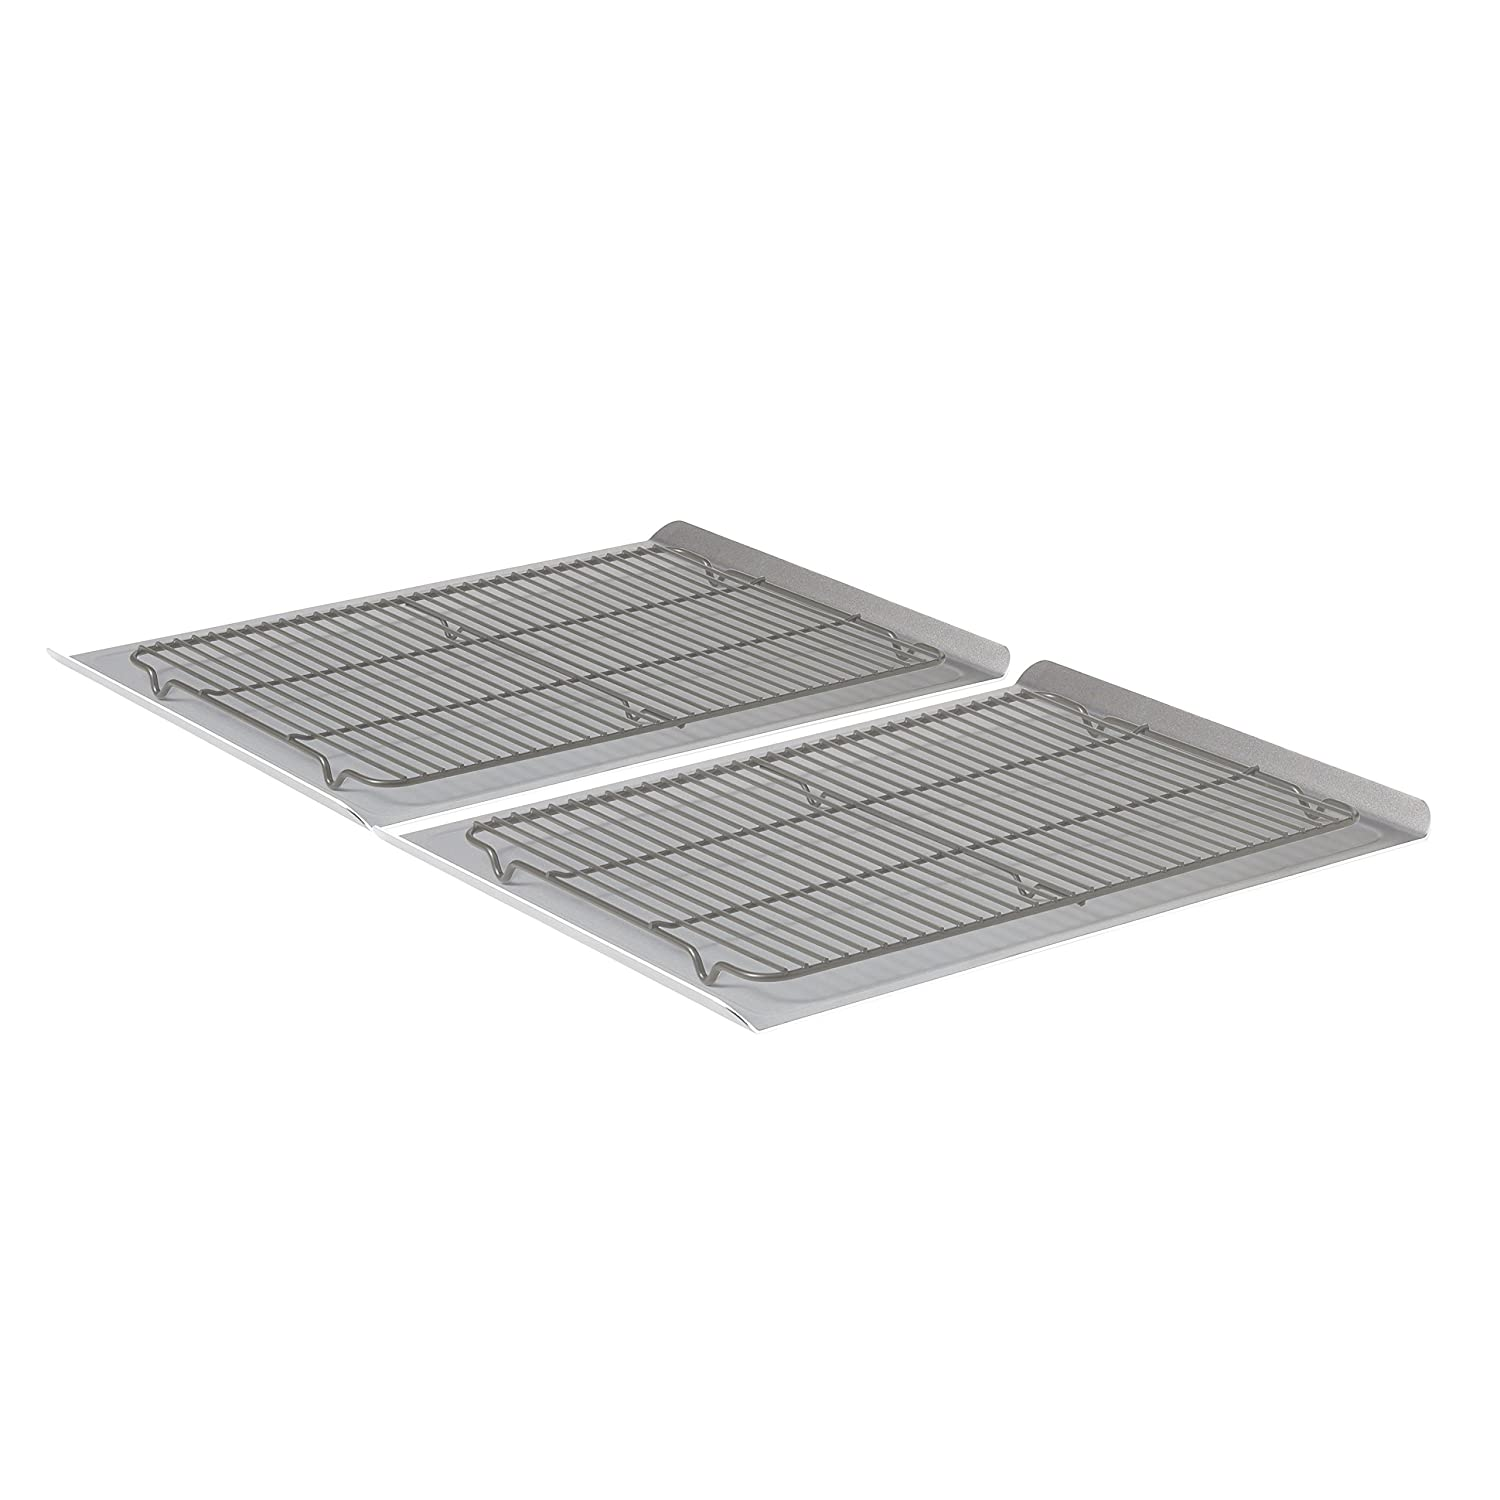 Calphalon Nonstick Bakeware, Cookie Sheet, 2-Piece Set